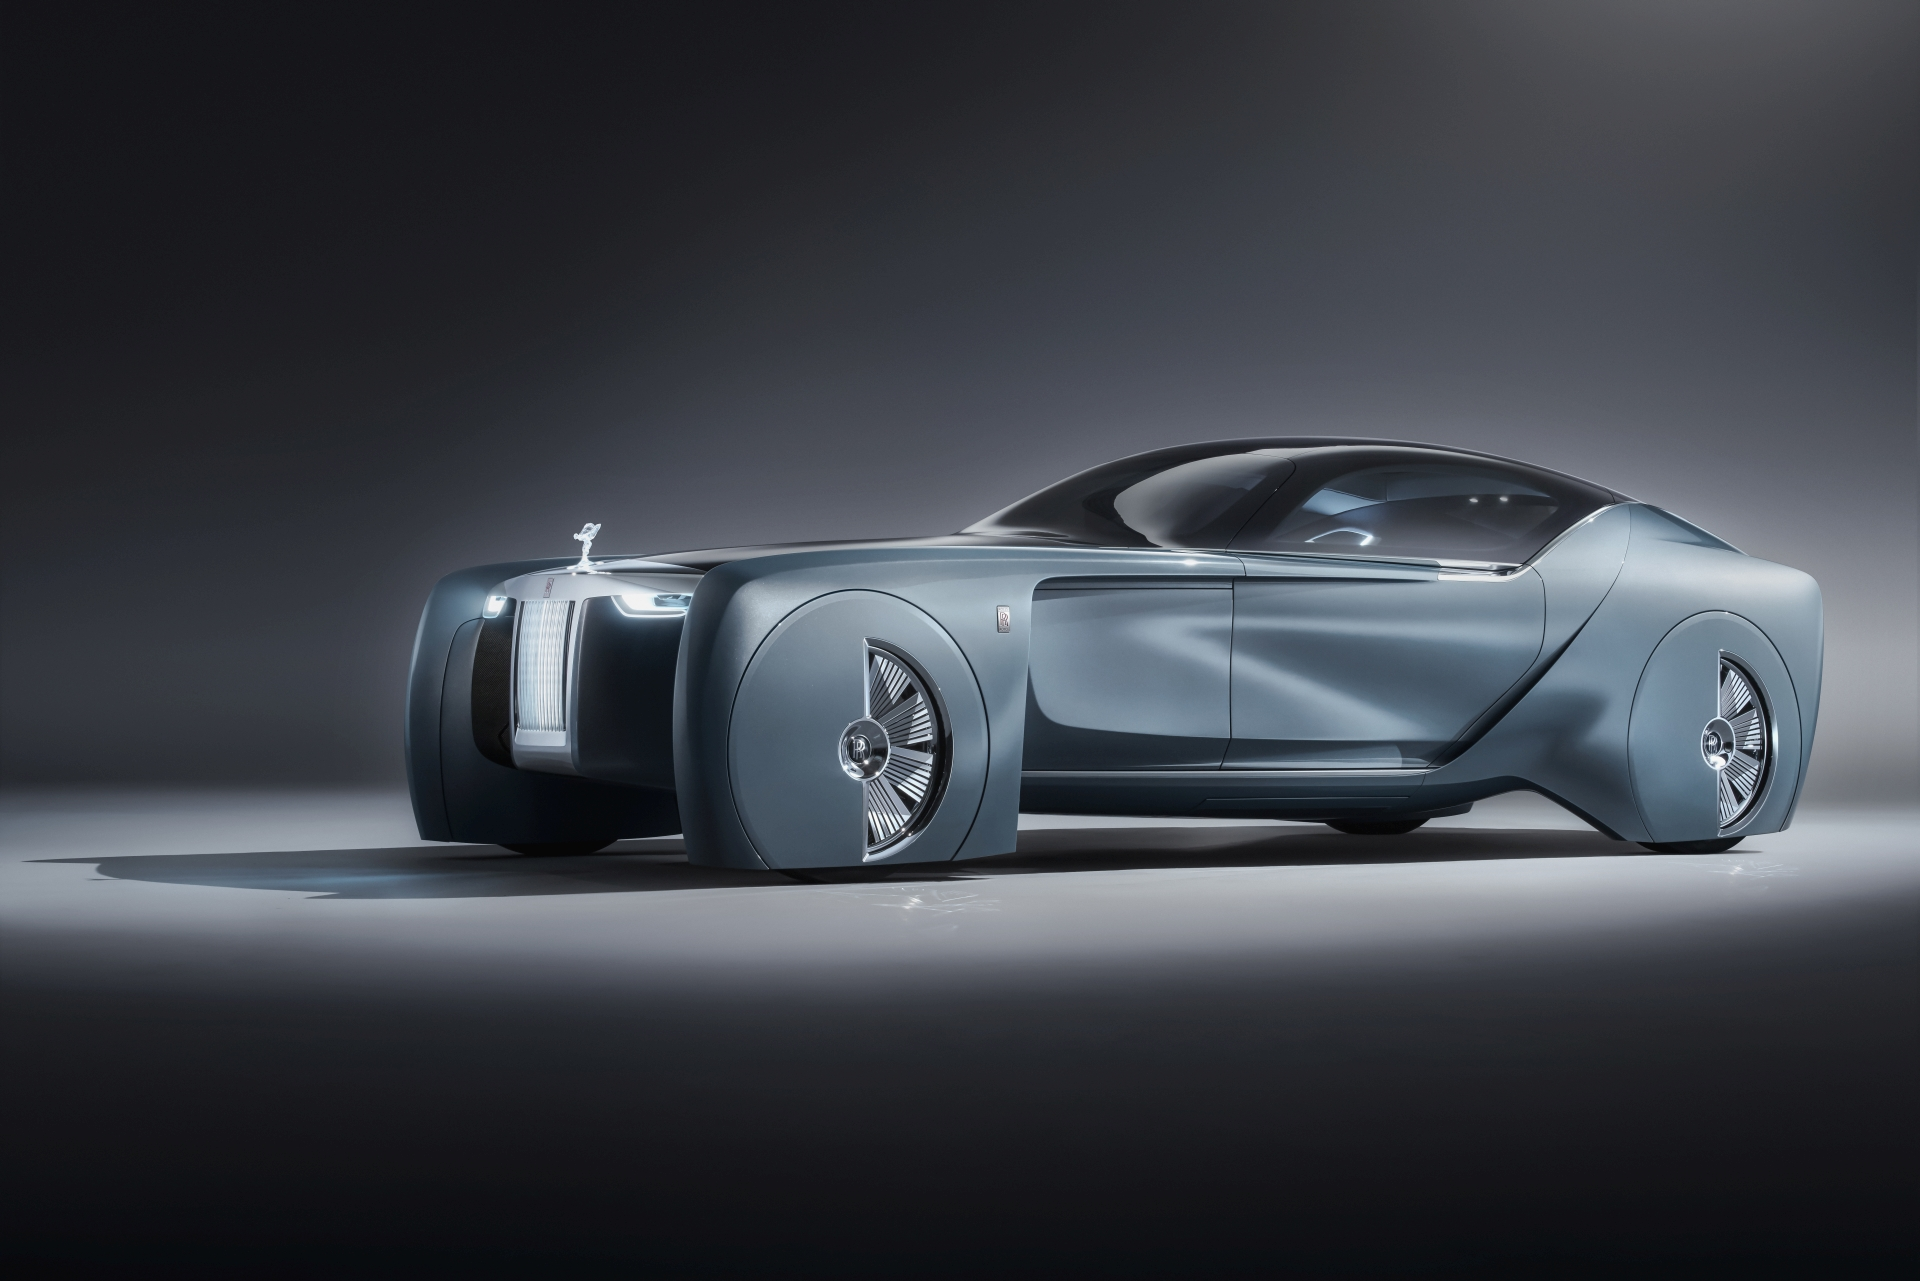 World Premiere Rolls Royce Vision Next 100